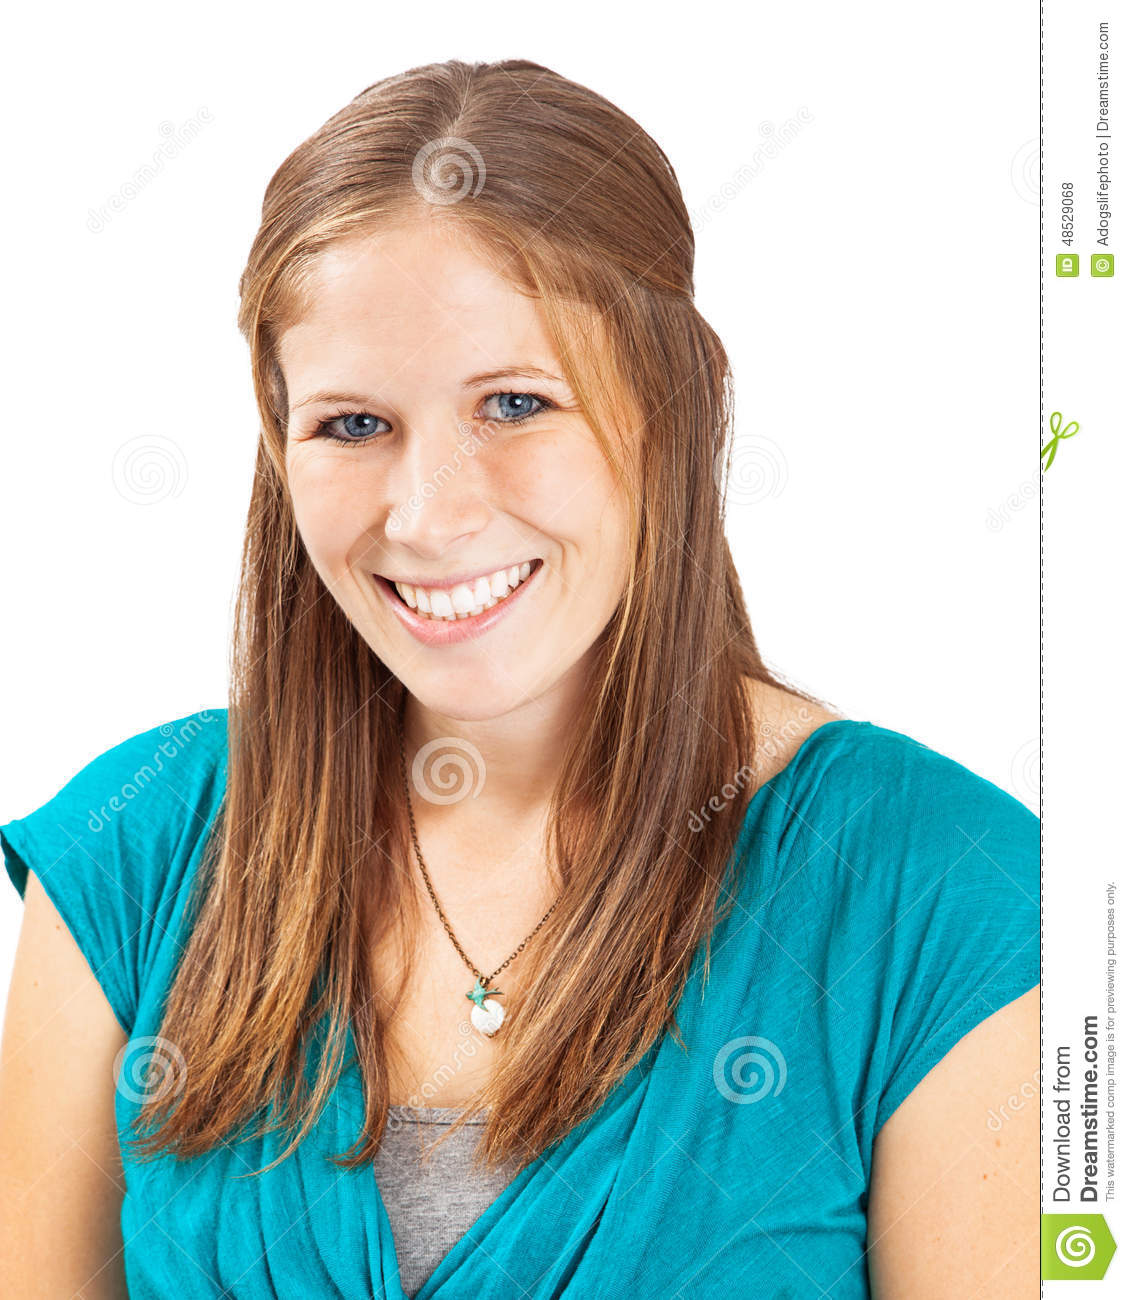 7cc864224747e Head Shot Of Young Woman Light Brown Hair Stock Photo - Image of ...